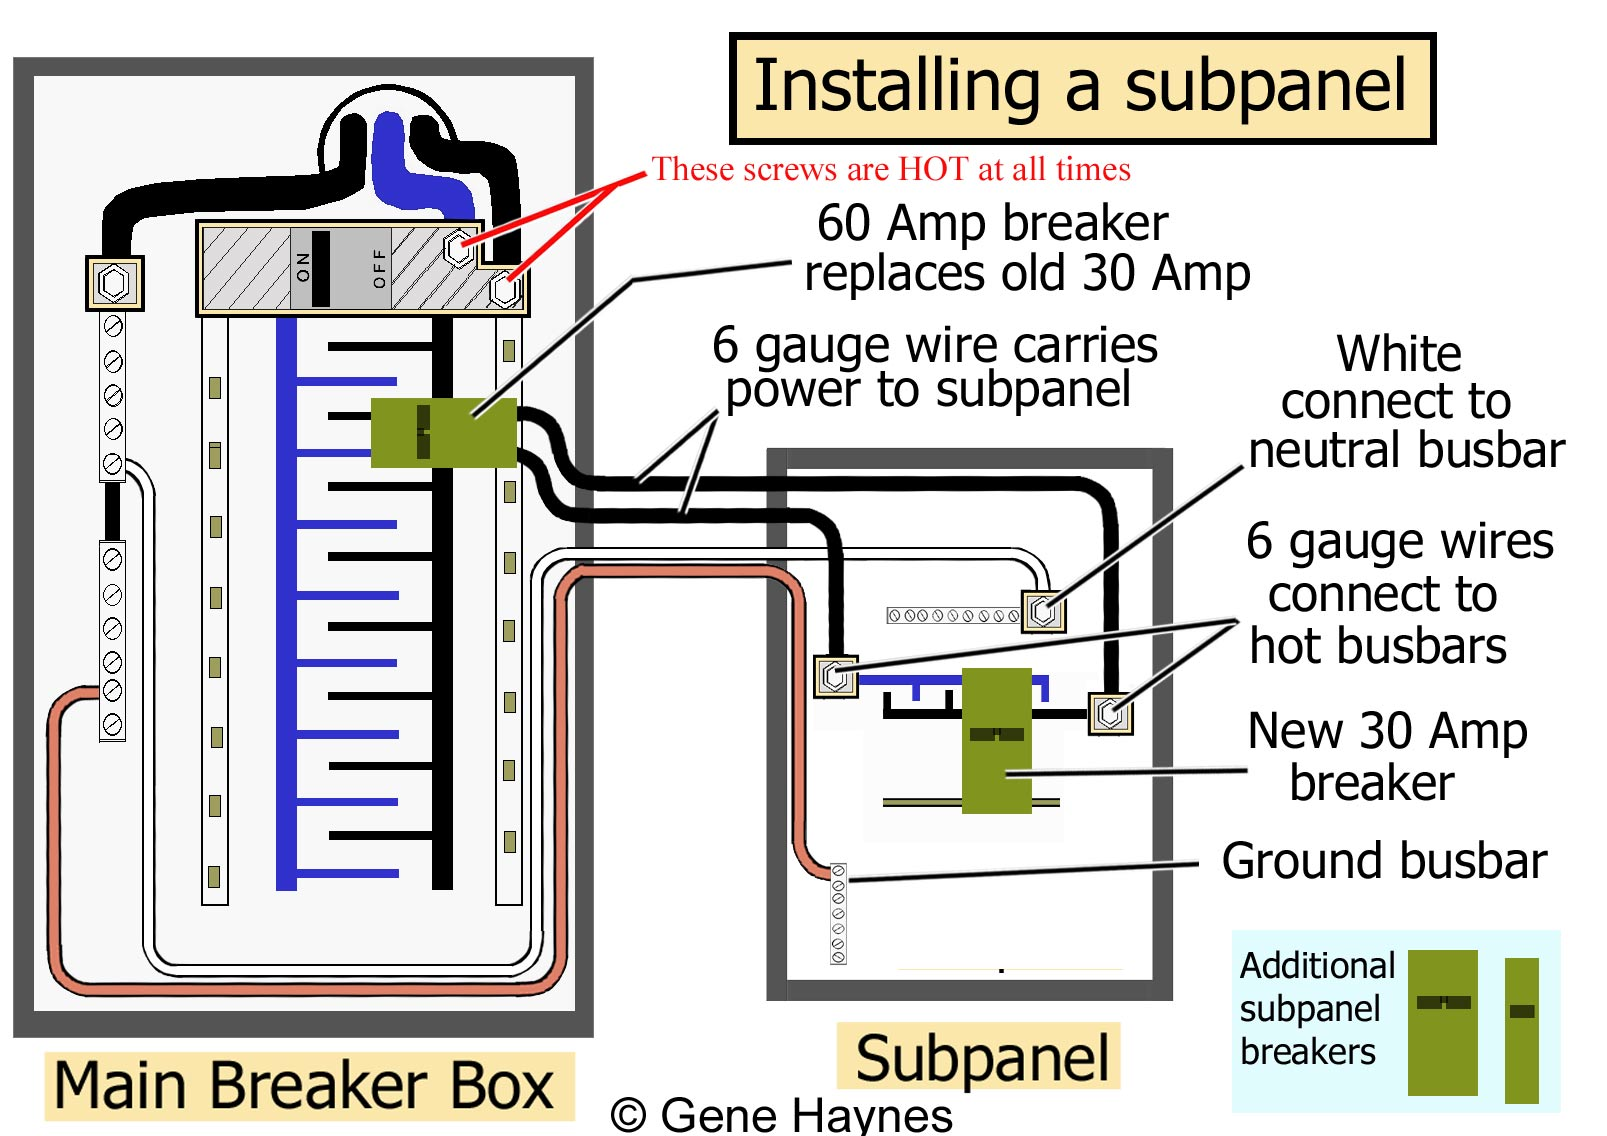 Main subpanel 2aa how to install a subpanel how to install main lug 60 amp sub panel wiring diagram at soozxer.org